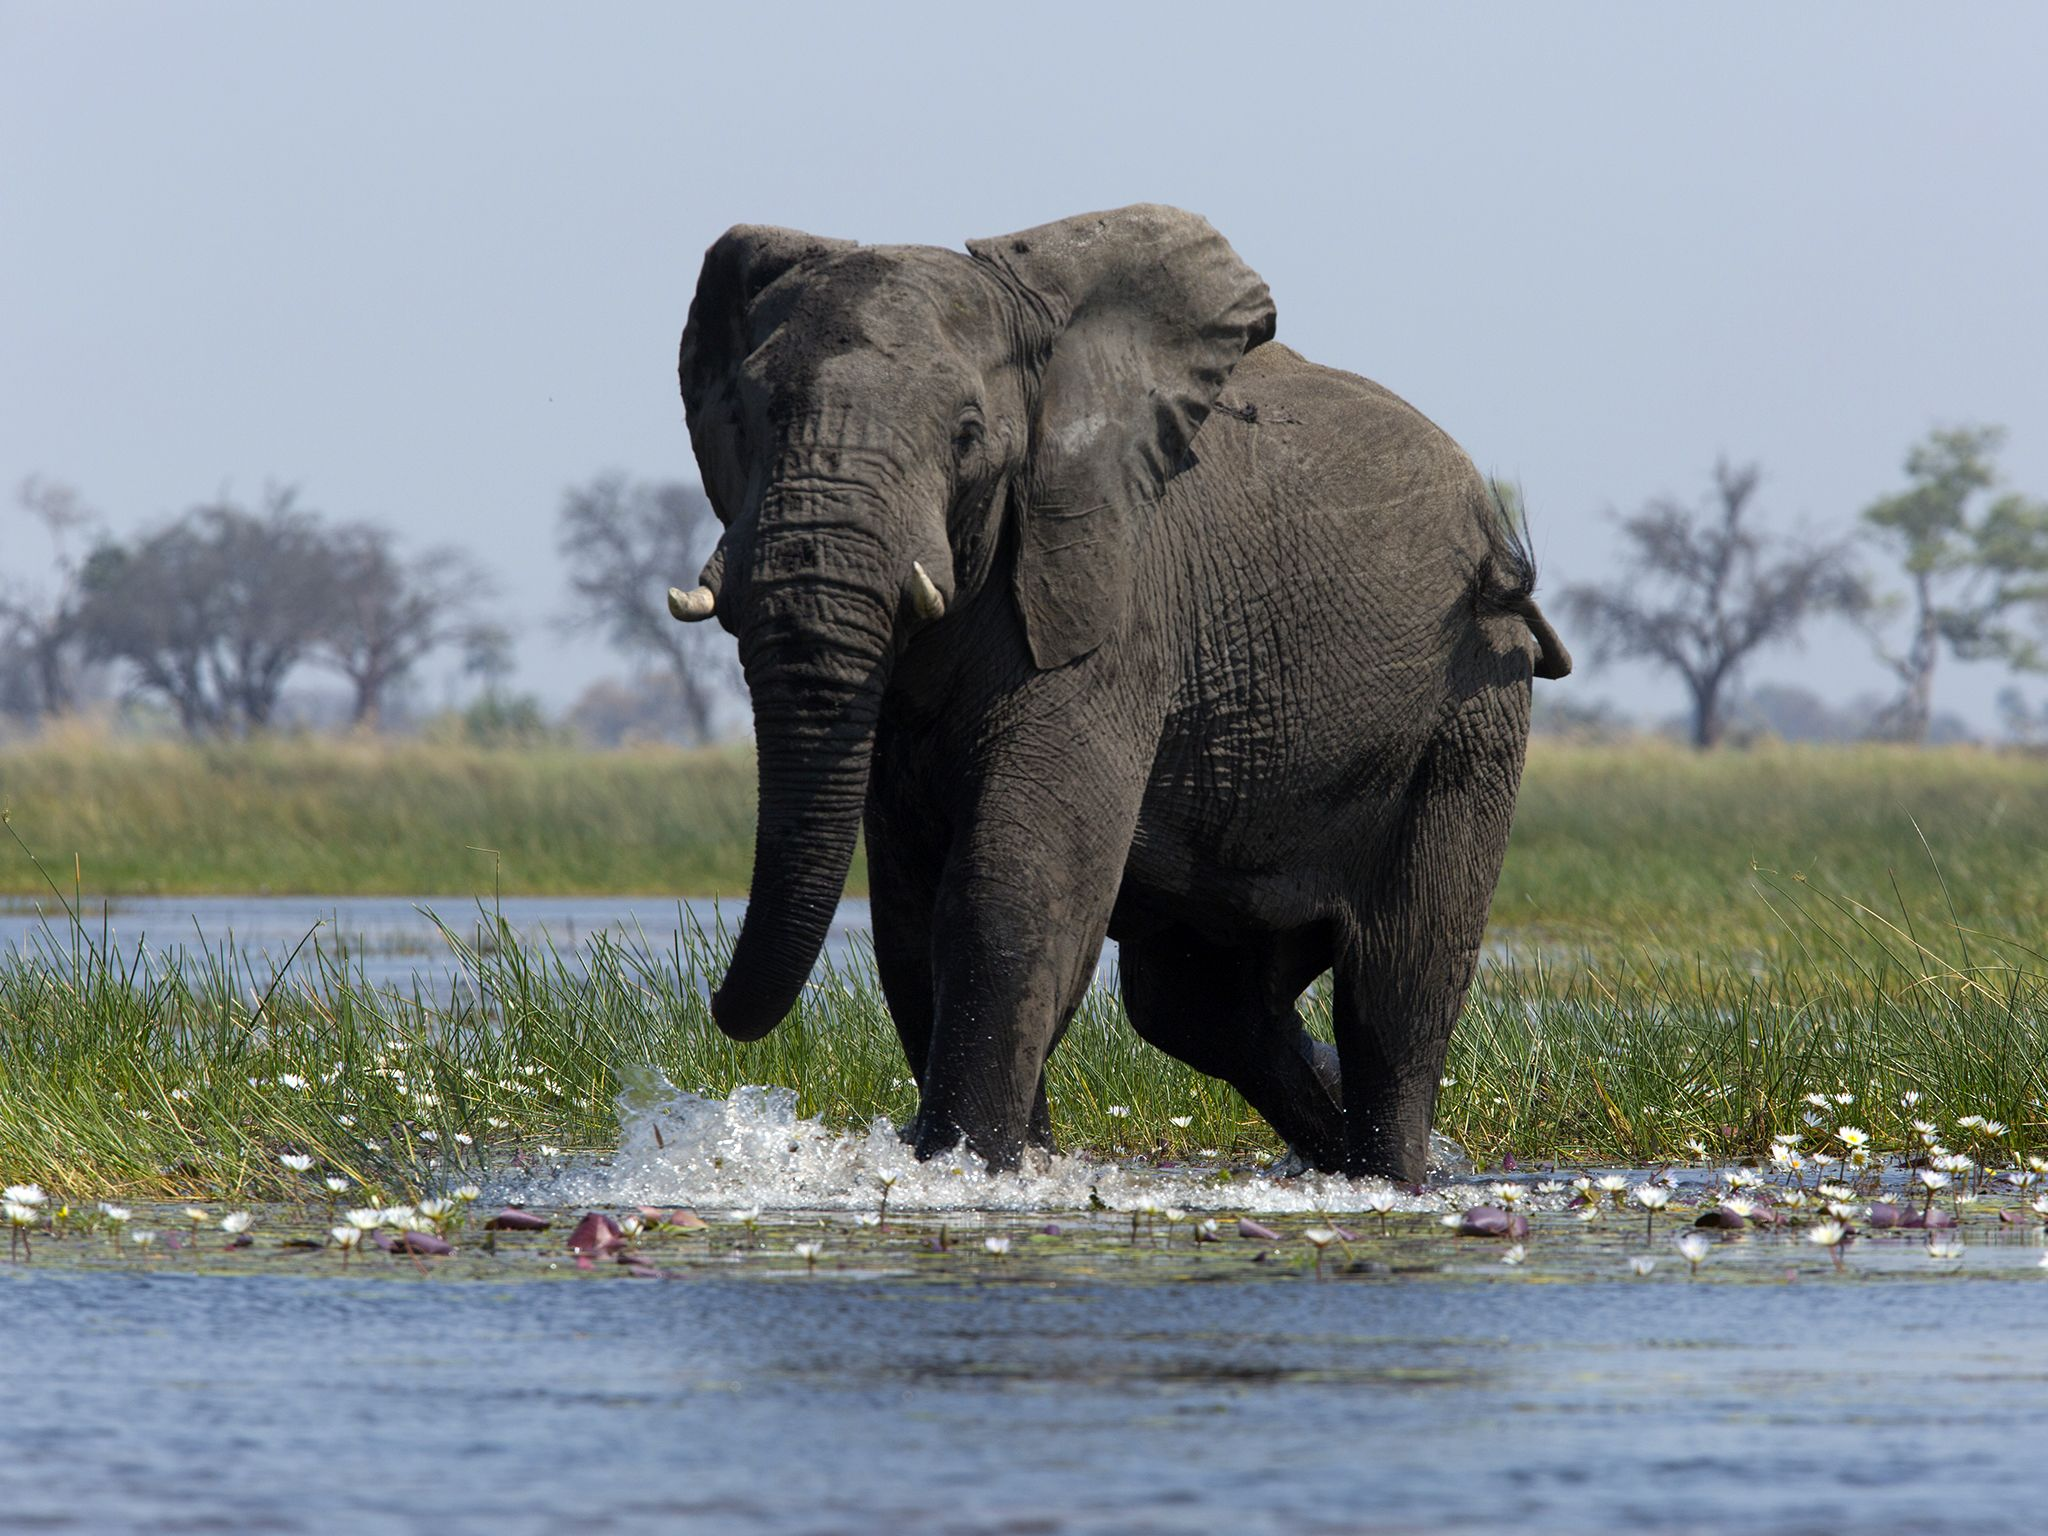 Botswana: Elephant walking into water, spotted on a river safari. This image is from Safari... [Photo of the day - سپتامبر 2016]